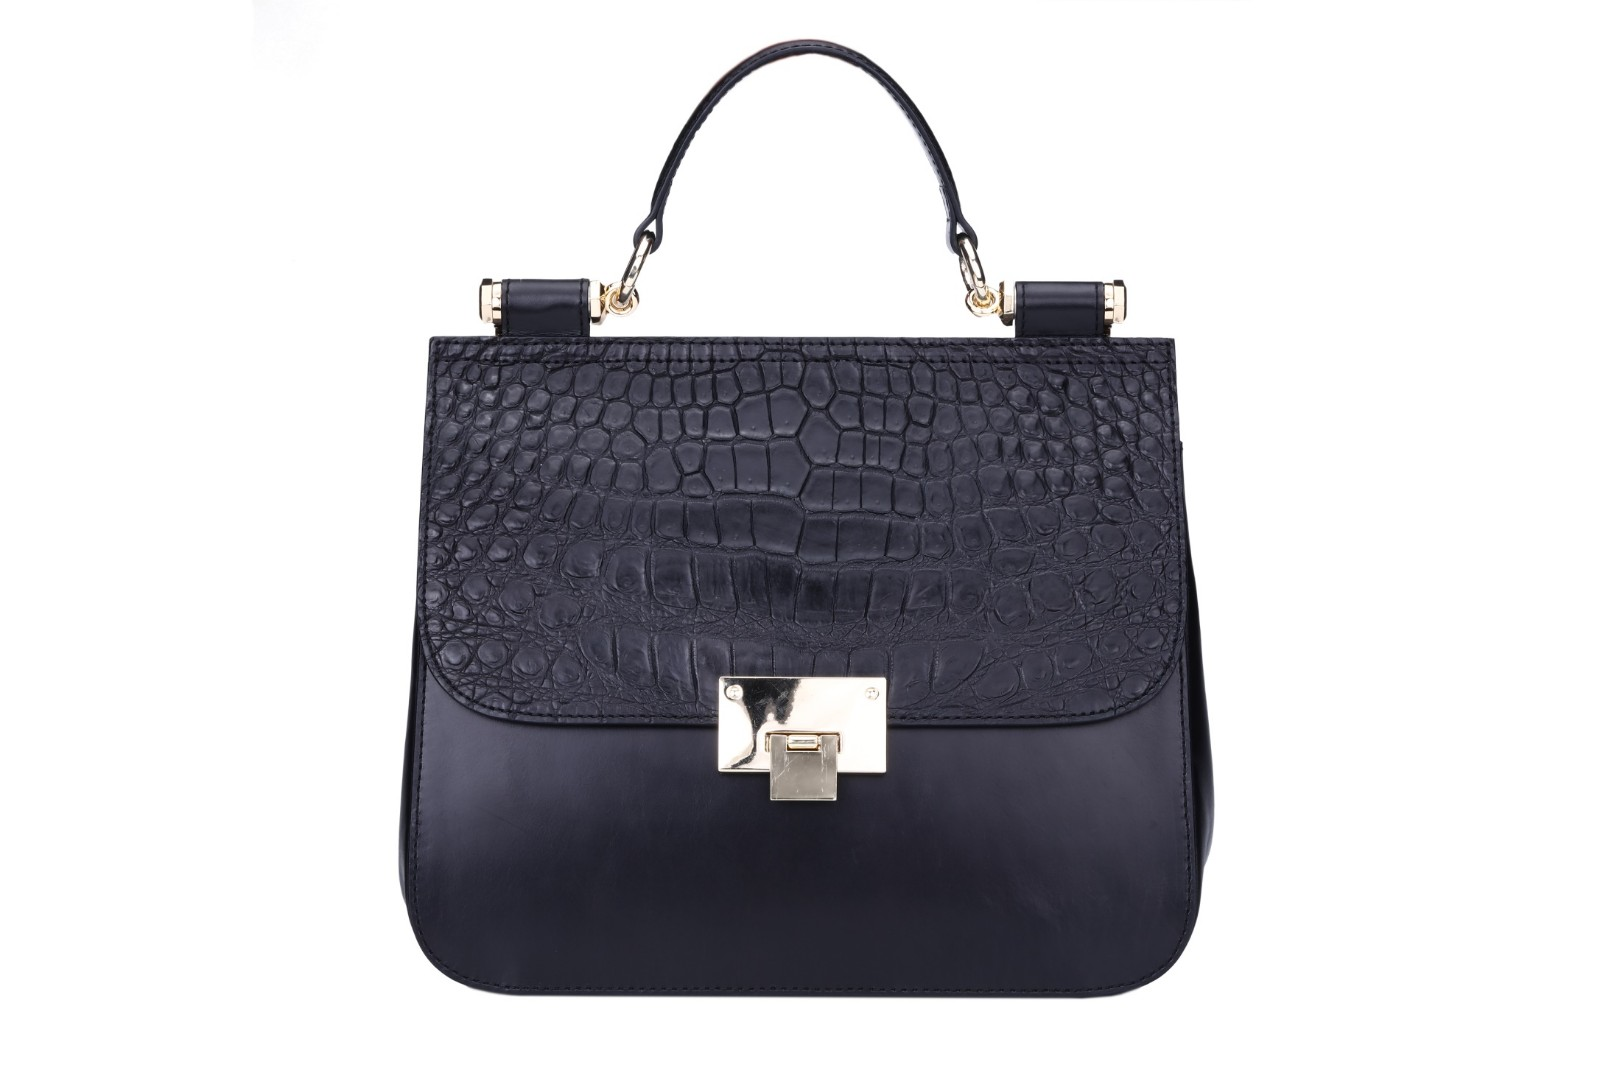 GF bags-Professional Ladies Bag Affordable Handbags From Gaofeng Bags